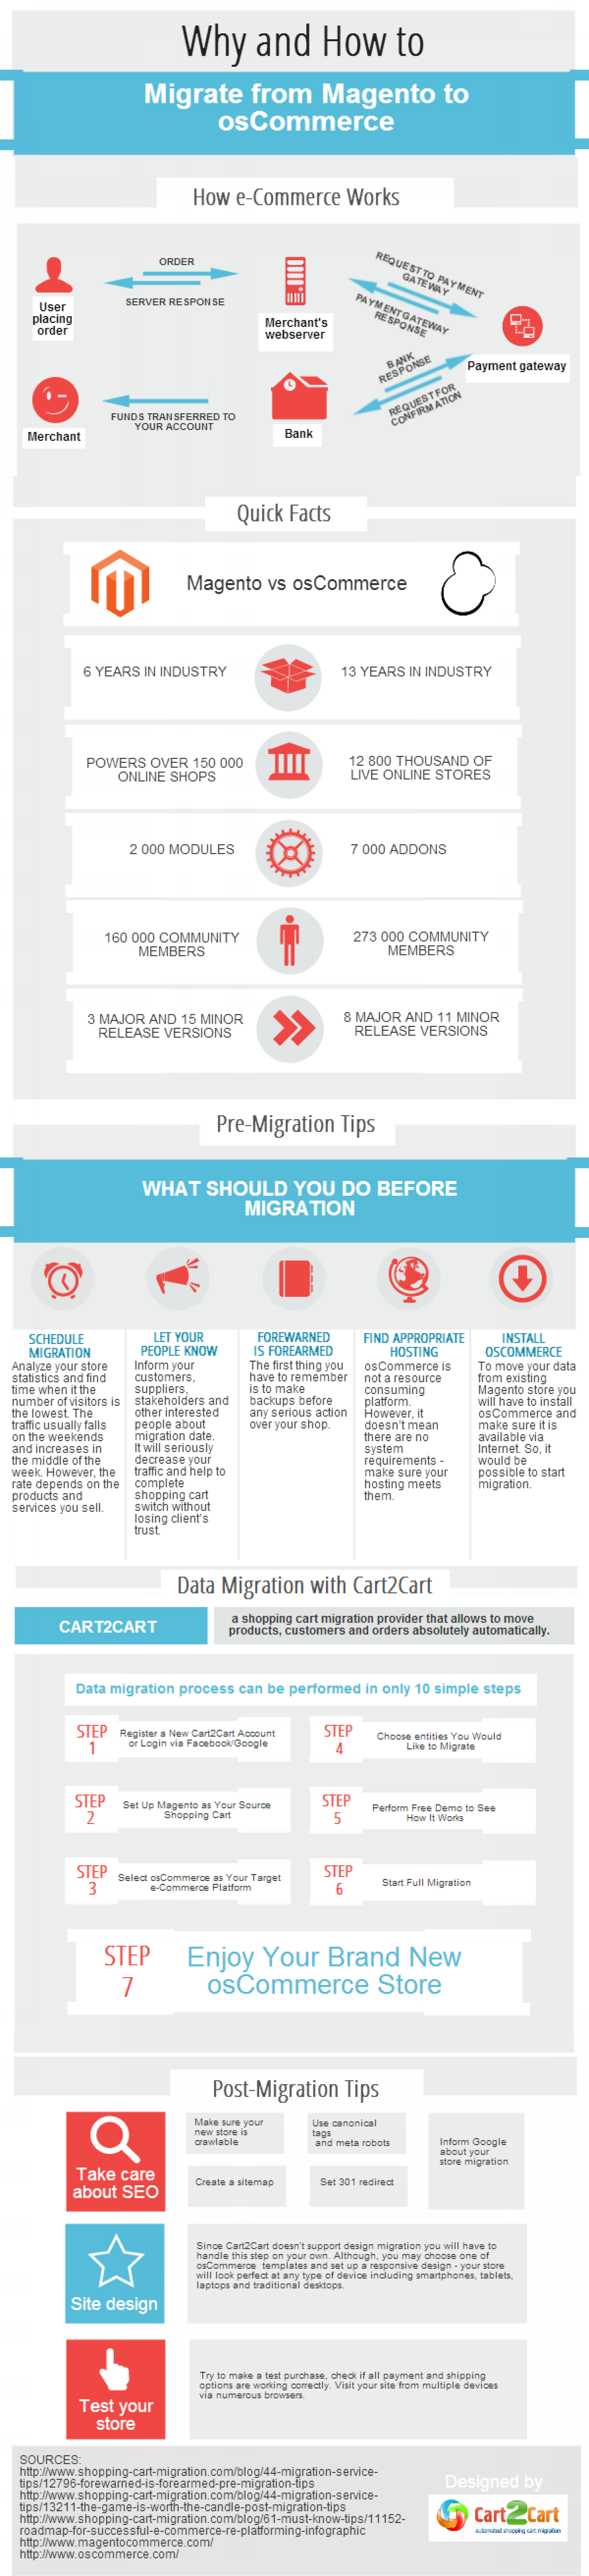 Why and How to Migrate from Magento to osCommerce Infographic